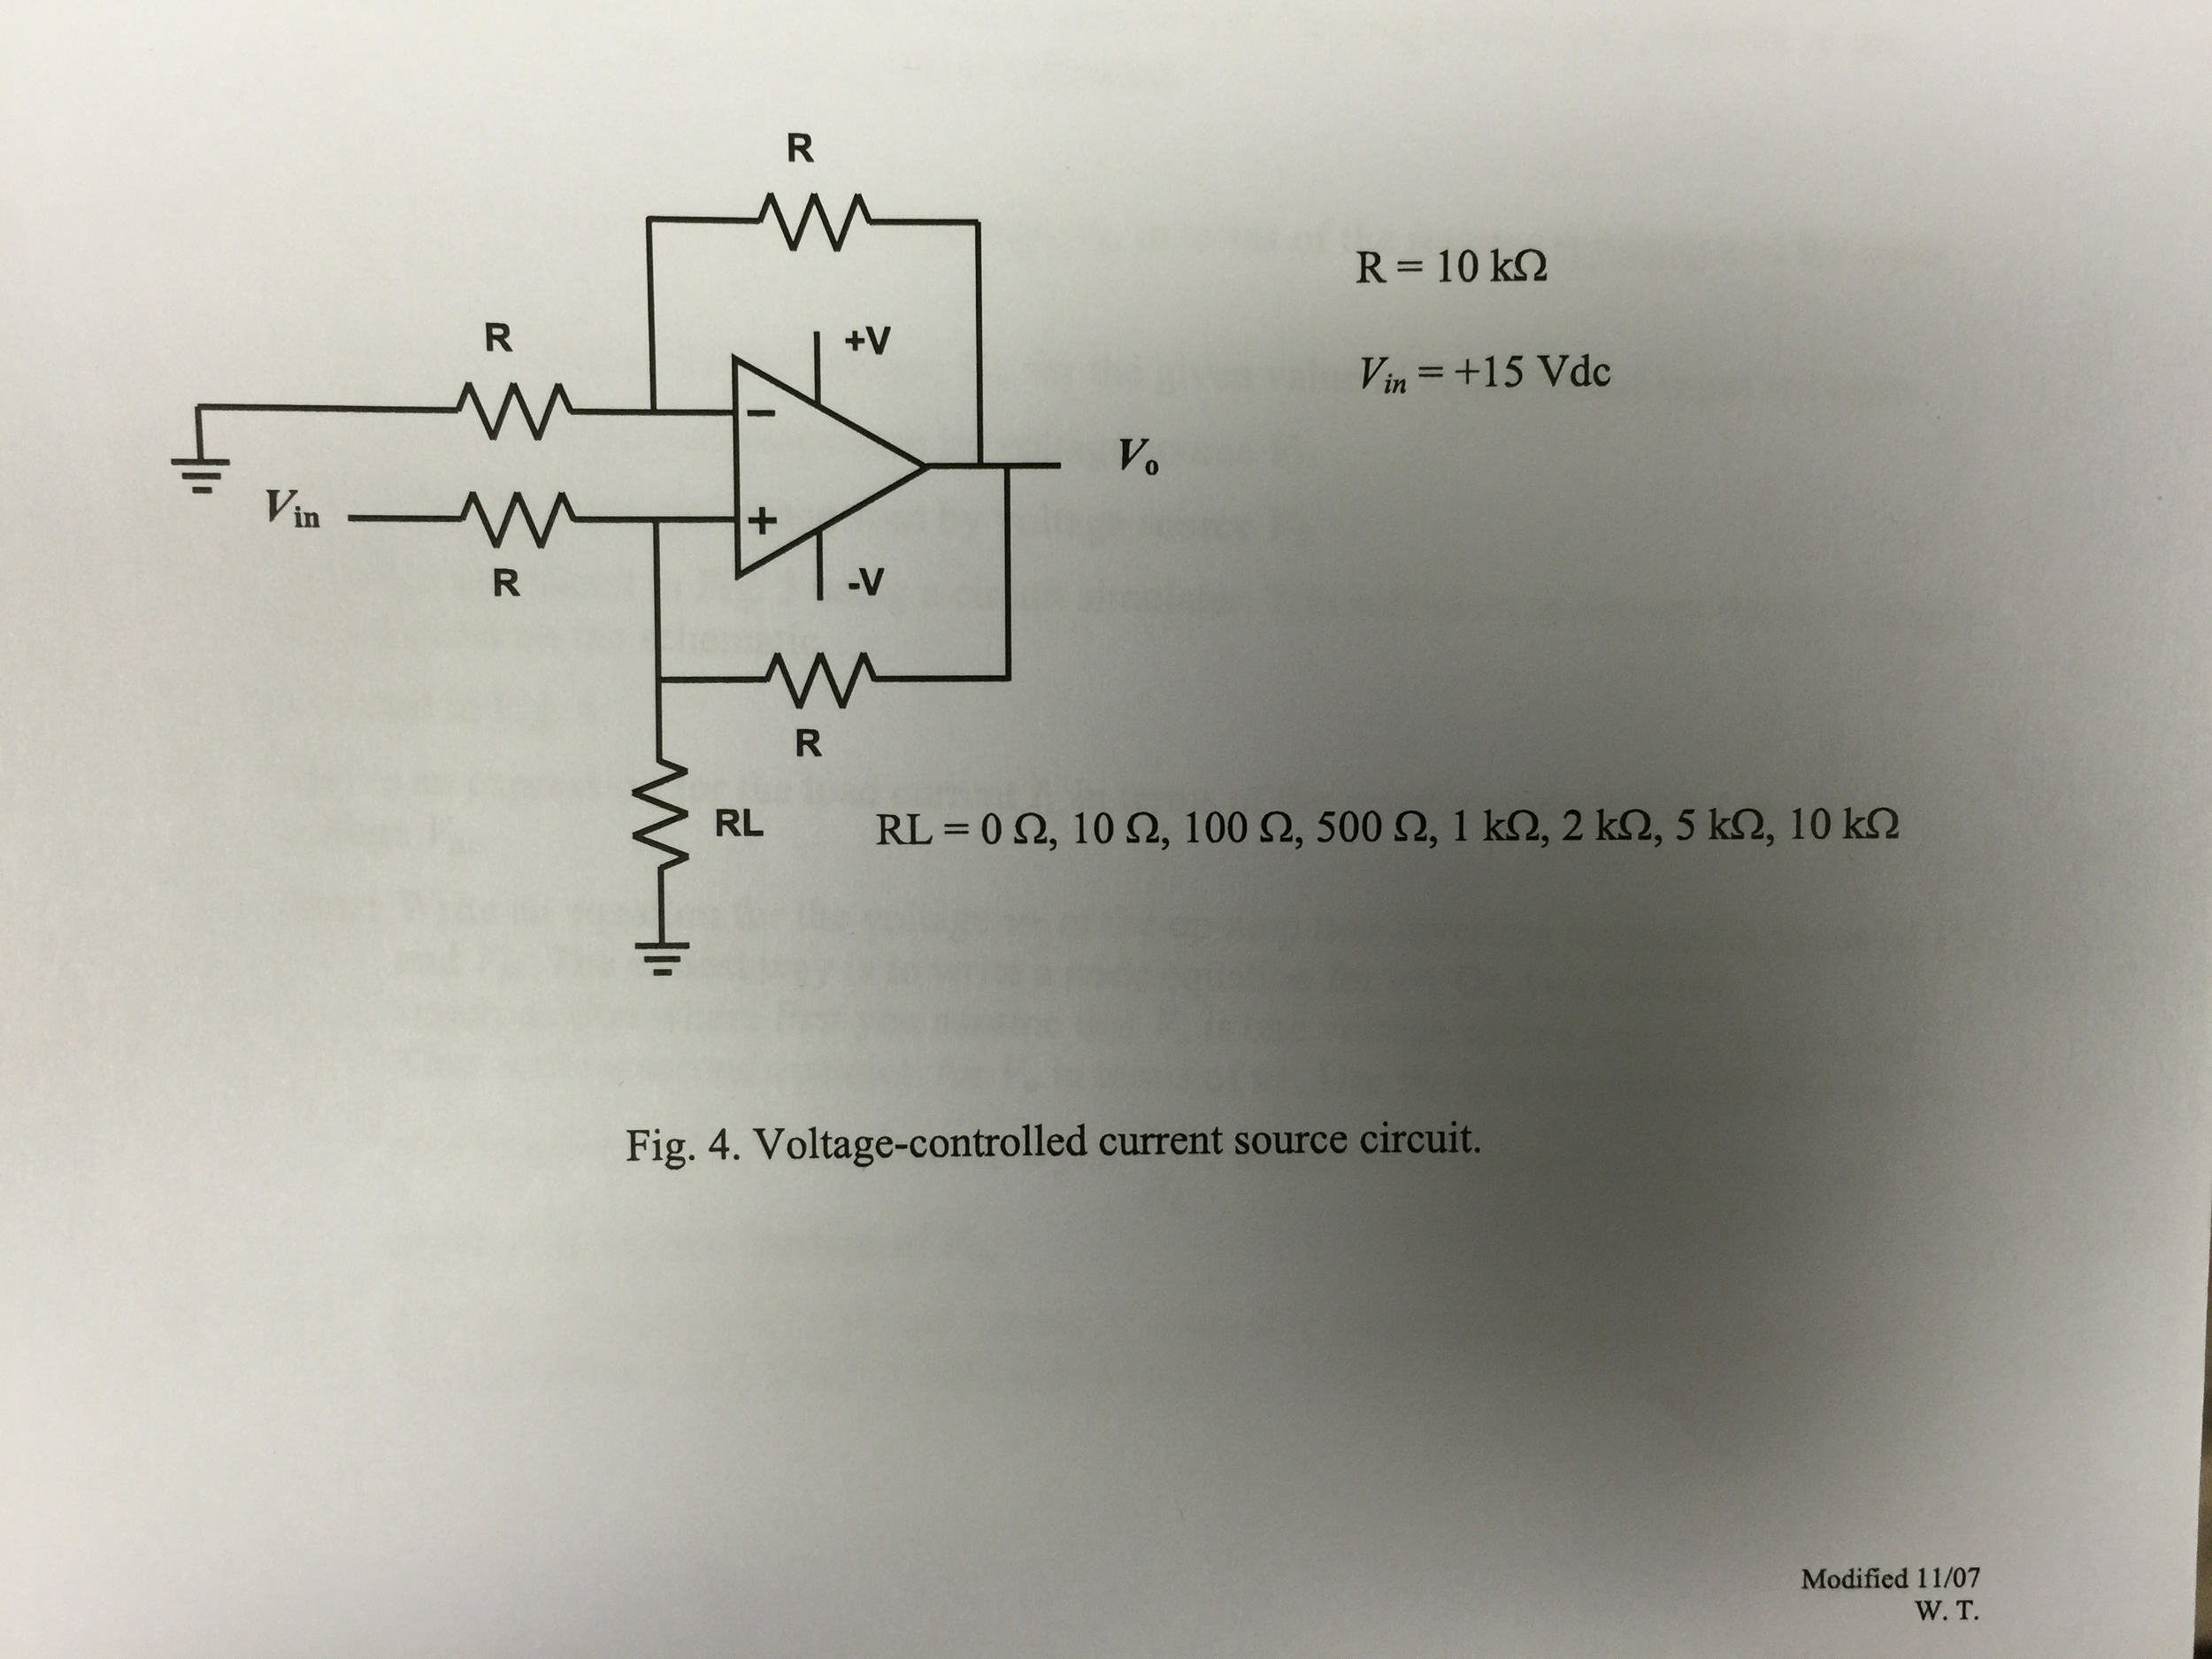 Solved: Derive An Expression For The Load Current IL In Te ...